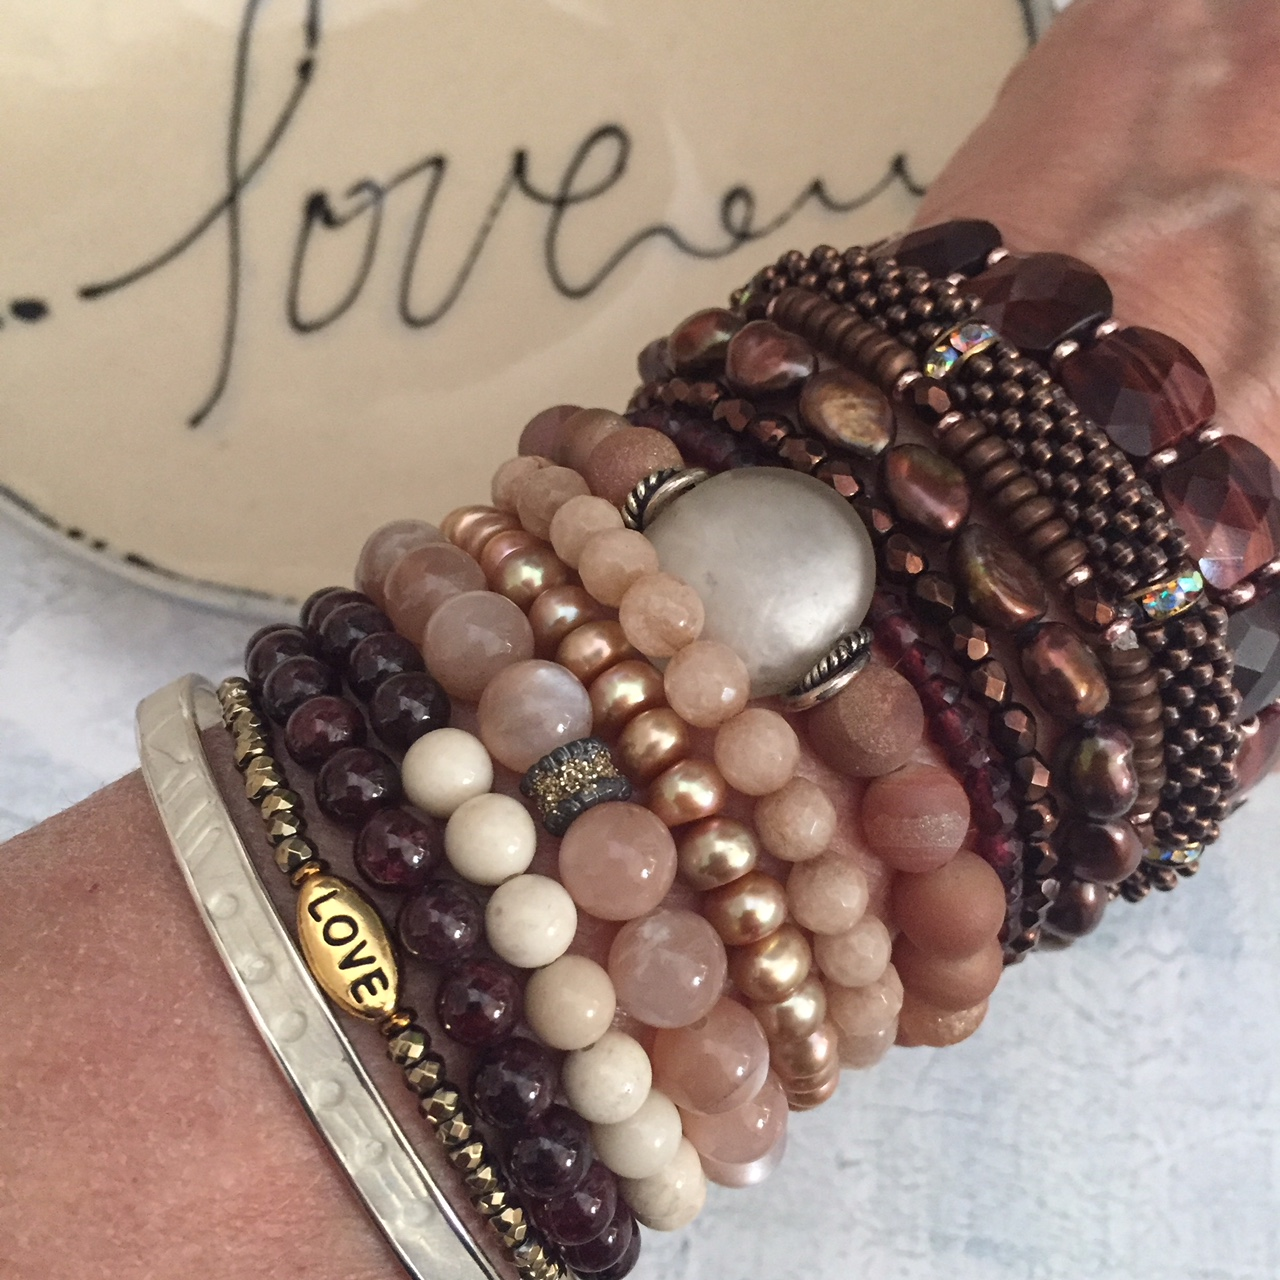 2/14 is all about love in all it's subtle shades and splendor. Dusty rose, blush and beige, russet and rouge, garnet, copper, moonstone, drouzy, polished fossil, dyed pearls, red tiger's eye, pink gold, and agate are stacked to express.  Sharing the love!